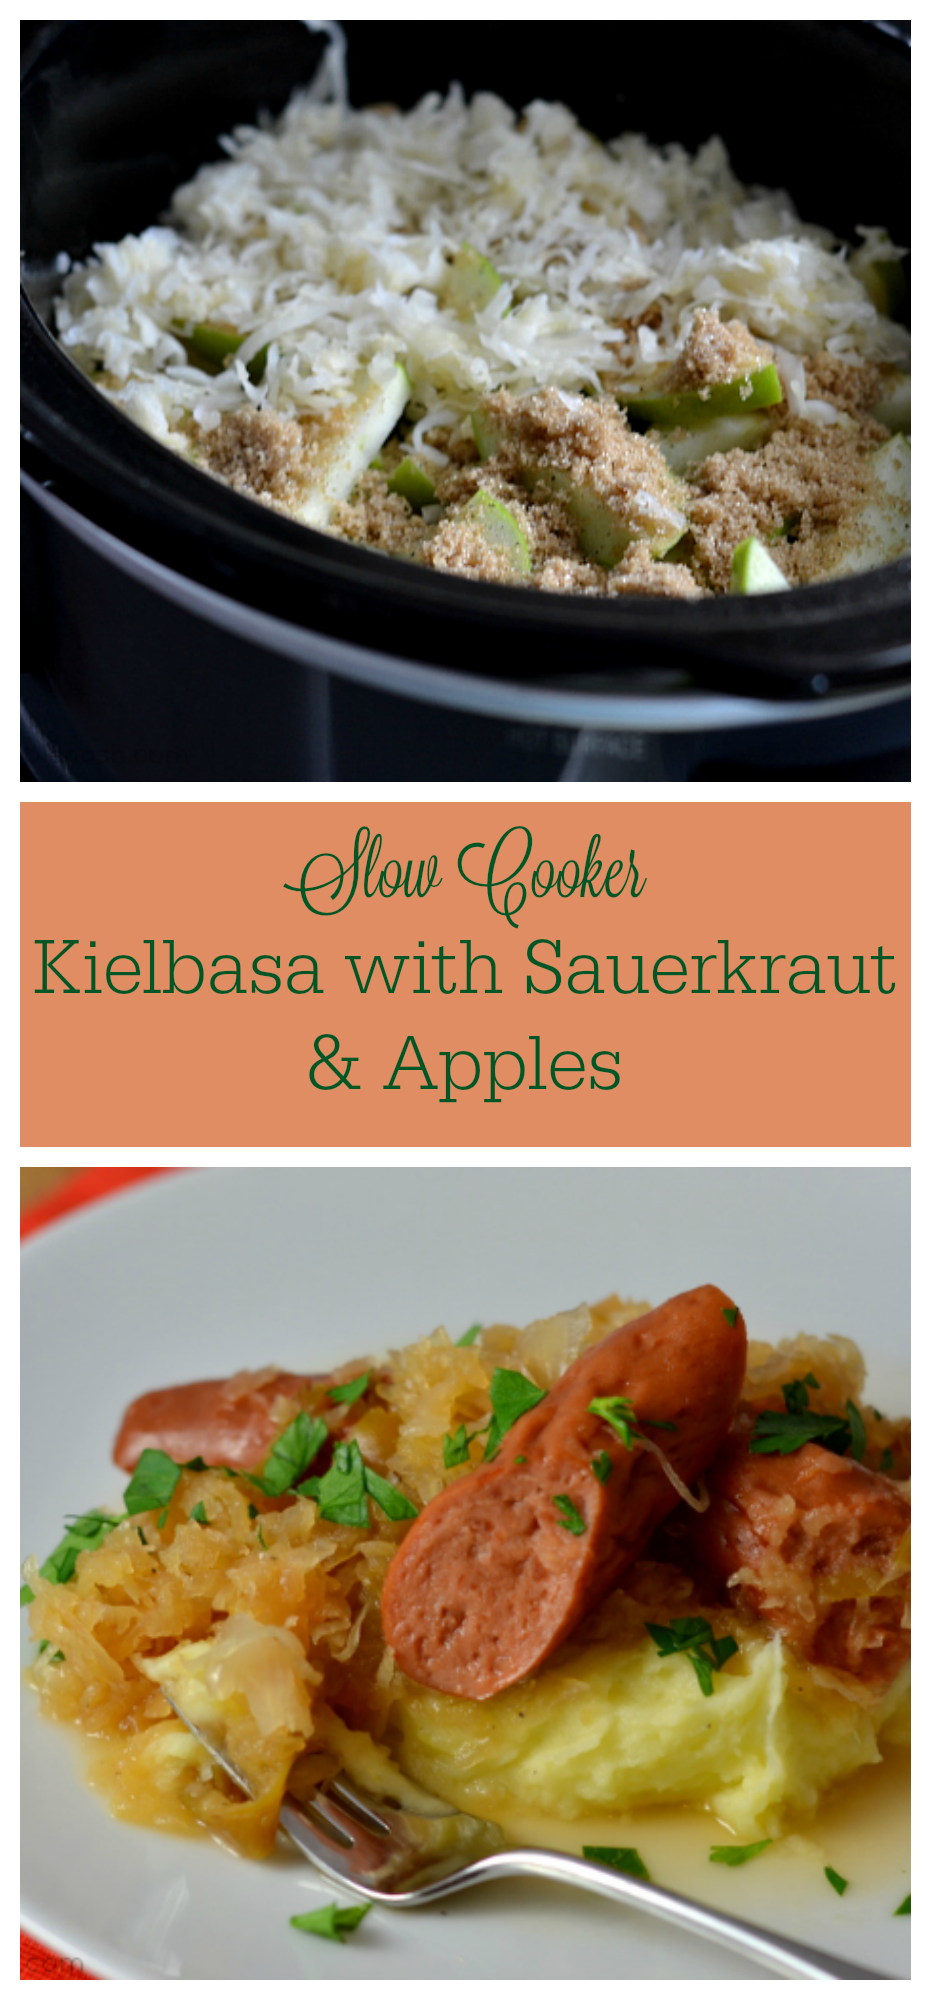 how to cook sauerkraut and kielbasa on the stove